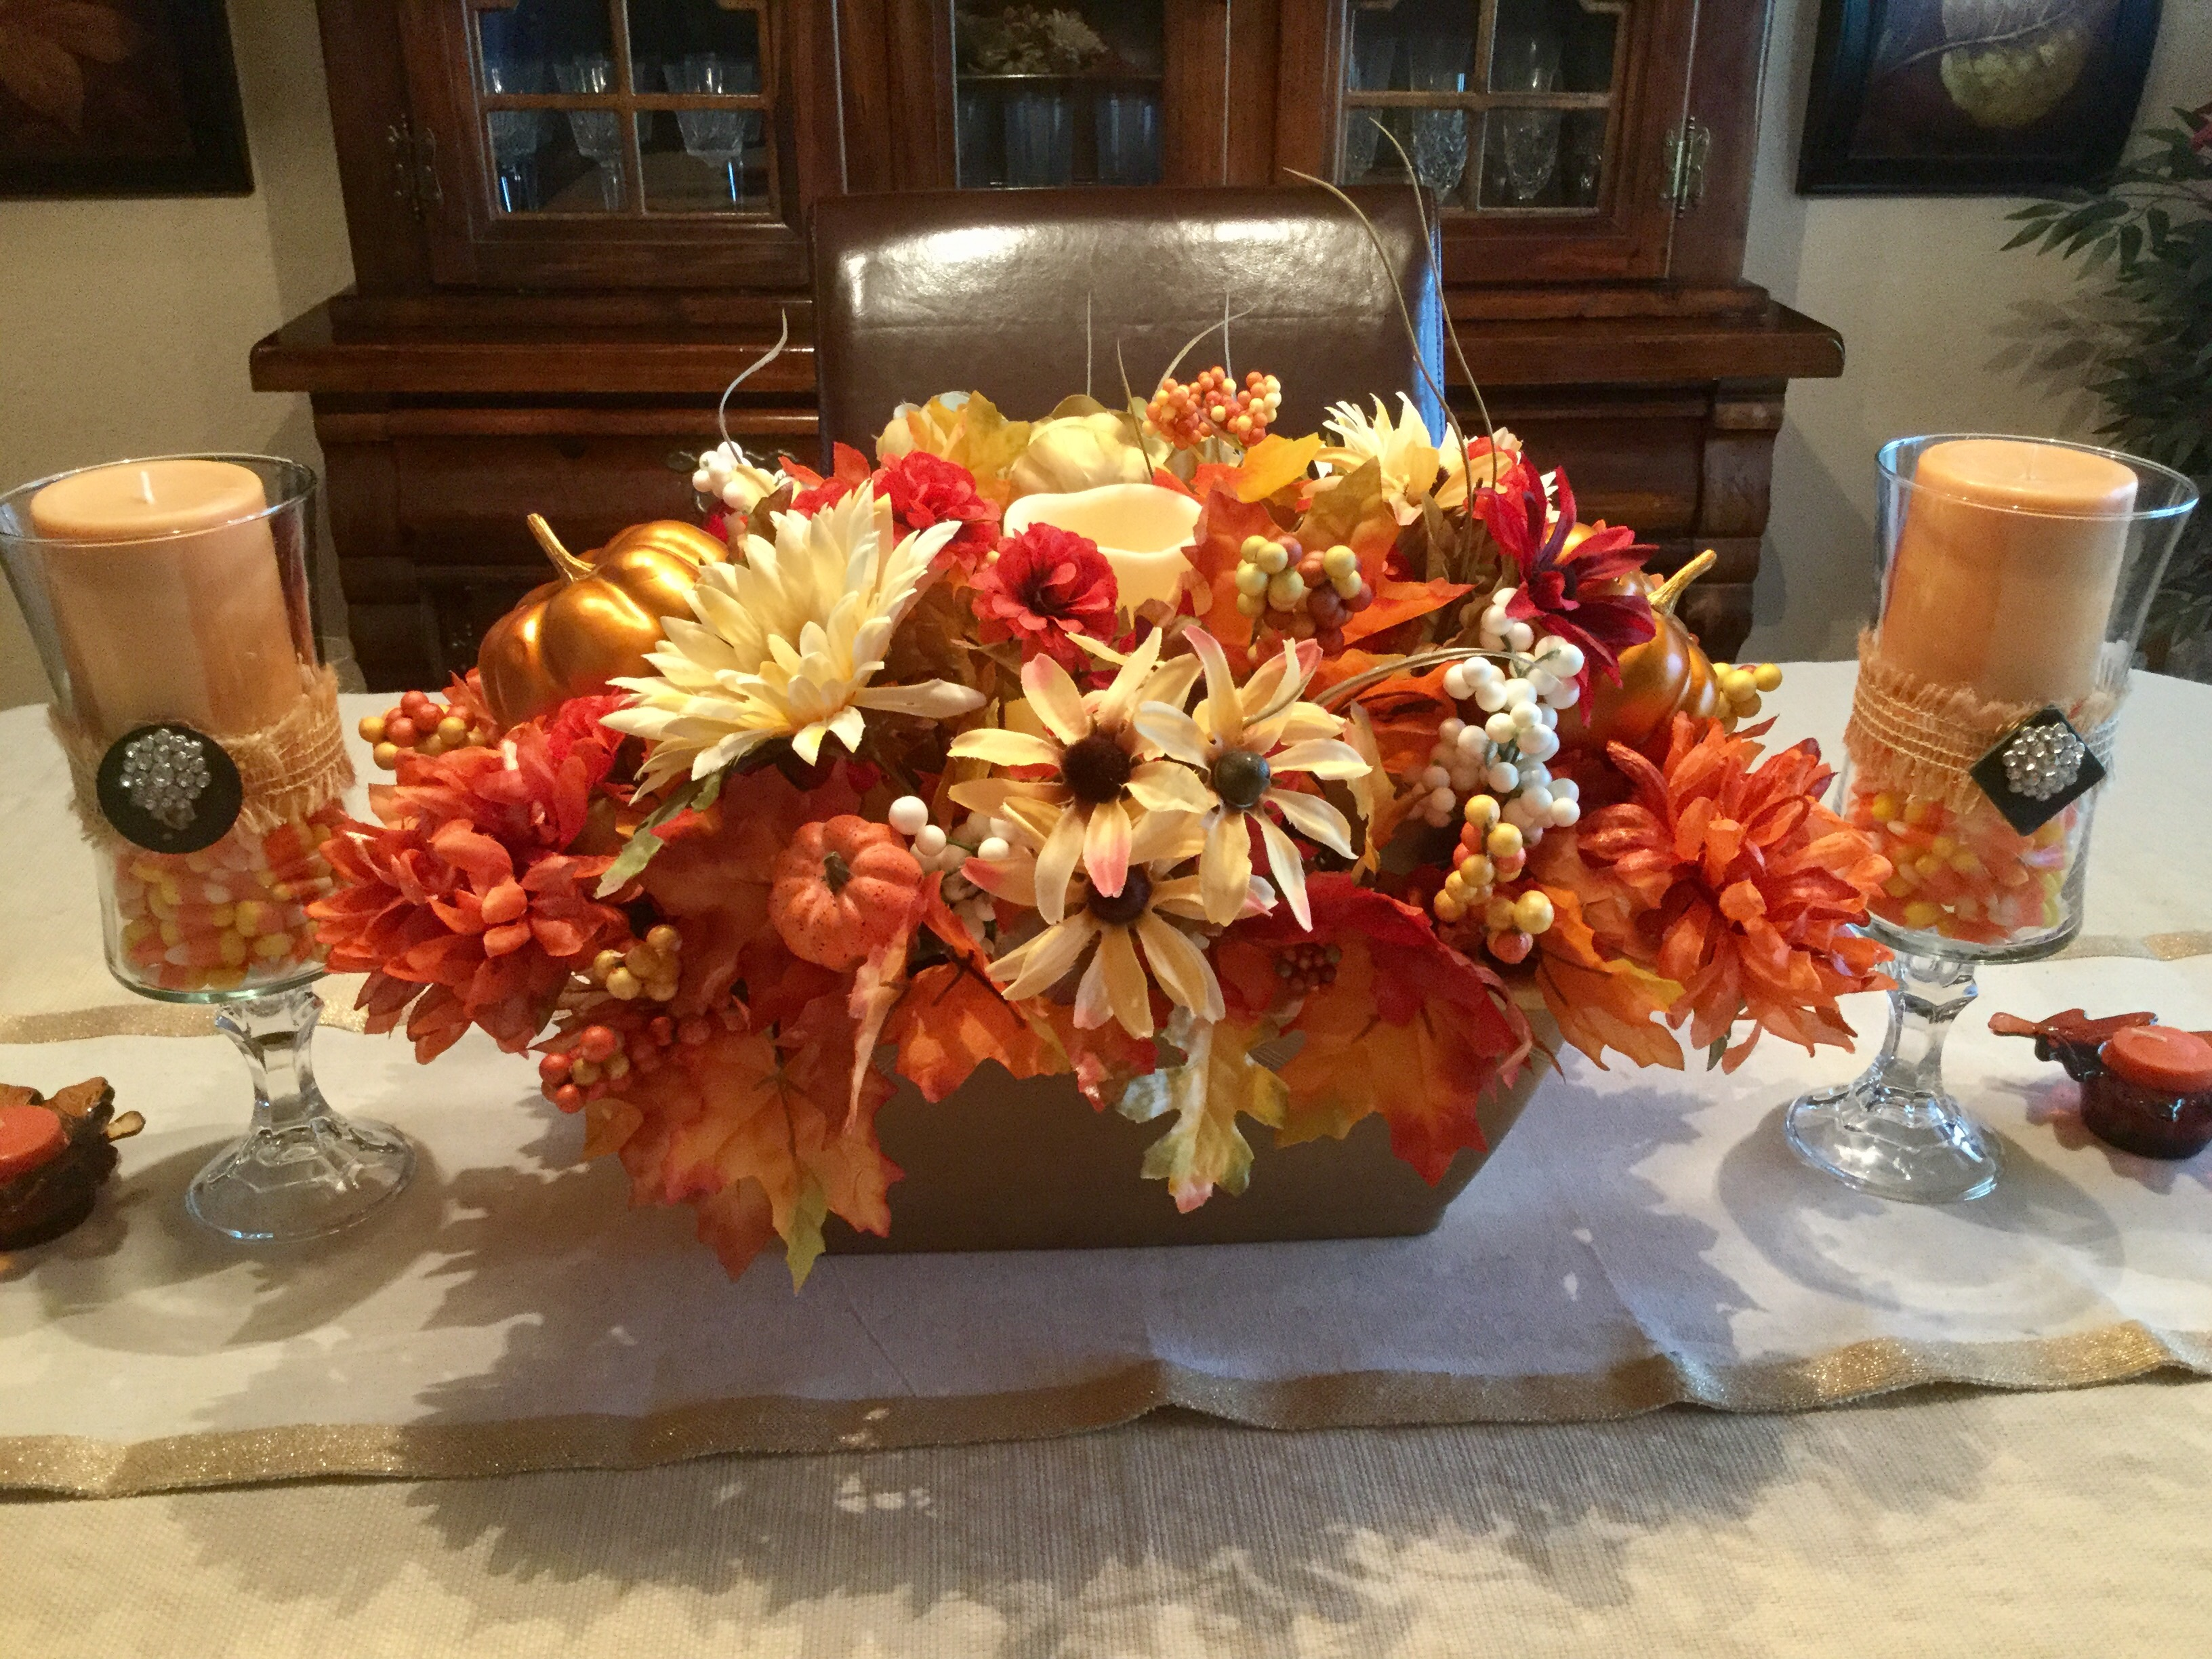 How To Make A DIY Dollar Tree Fall Centerpiece - Love To ...